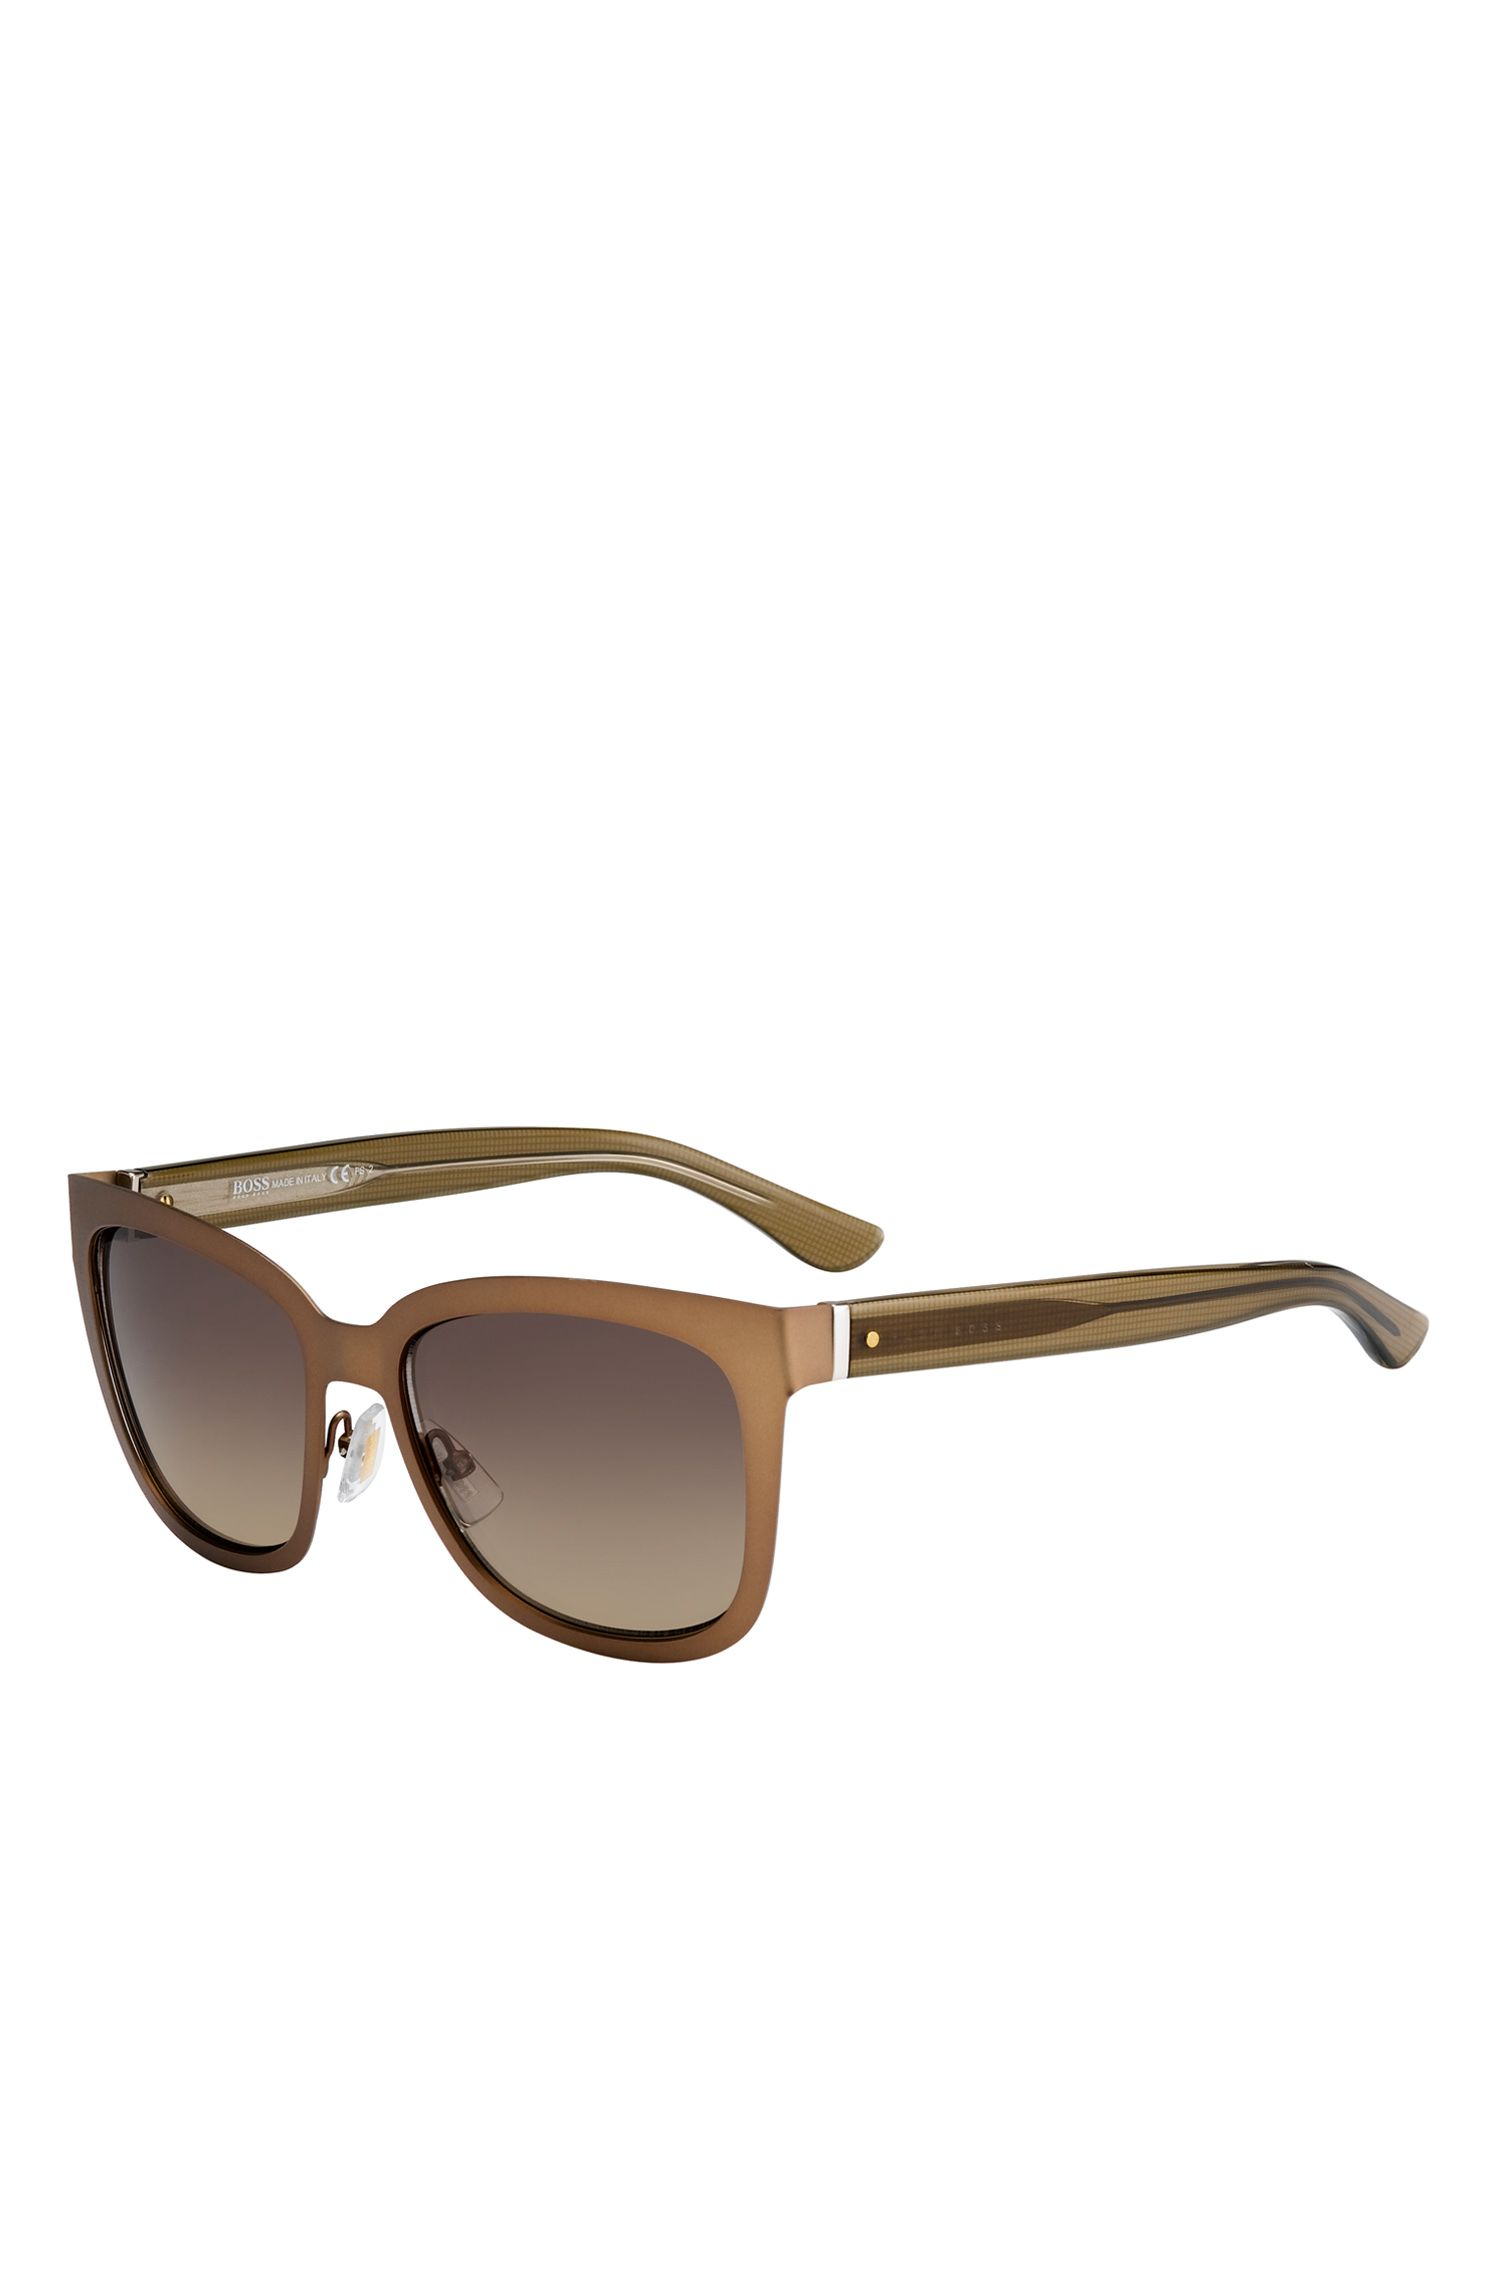 'BOSS 676S' | Brown Gradient Lens Rectangular Sunglasses